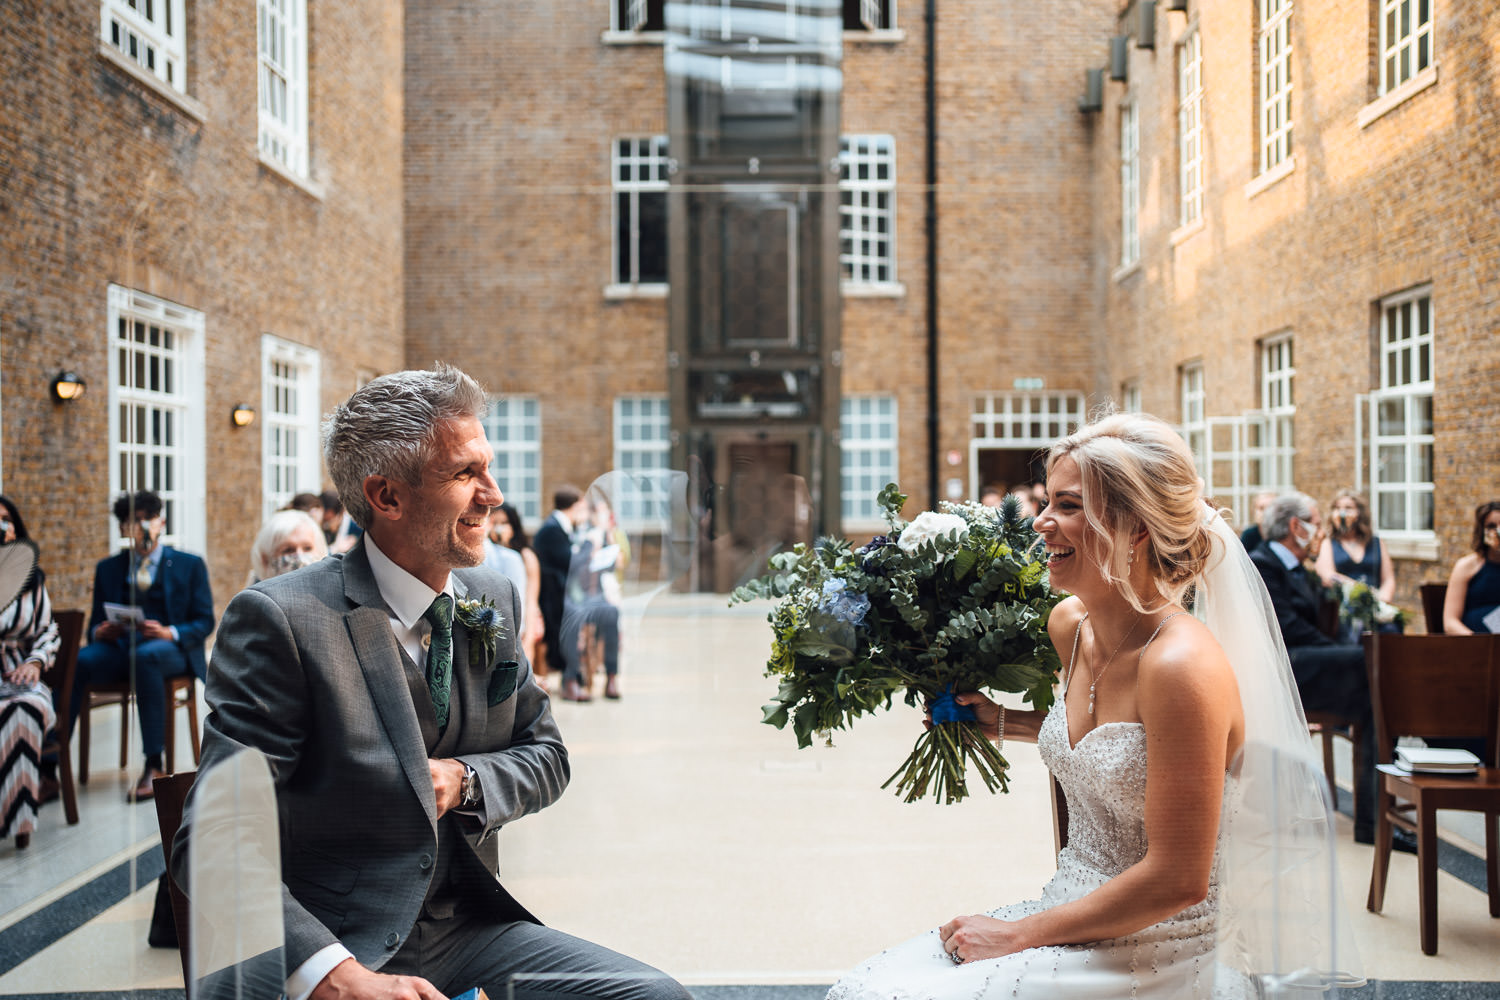 hackney town hall wedding ceremony by london wedding photographer the shannons photography